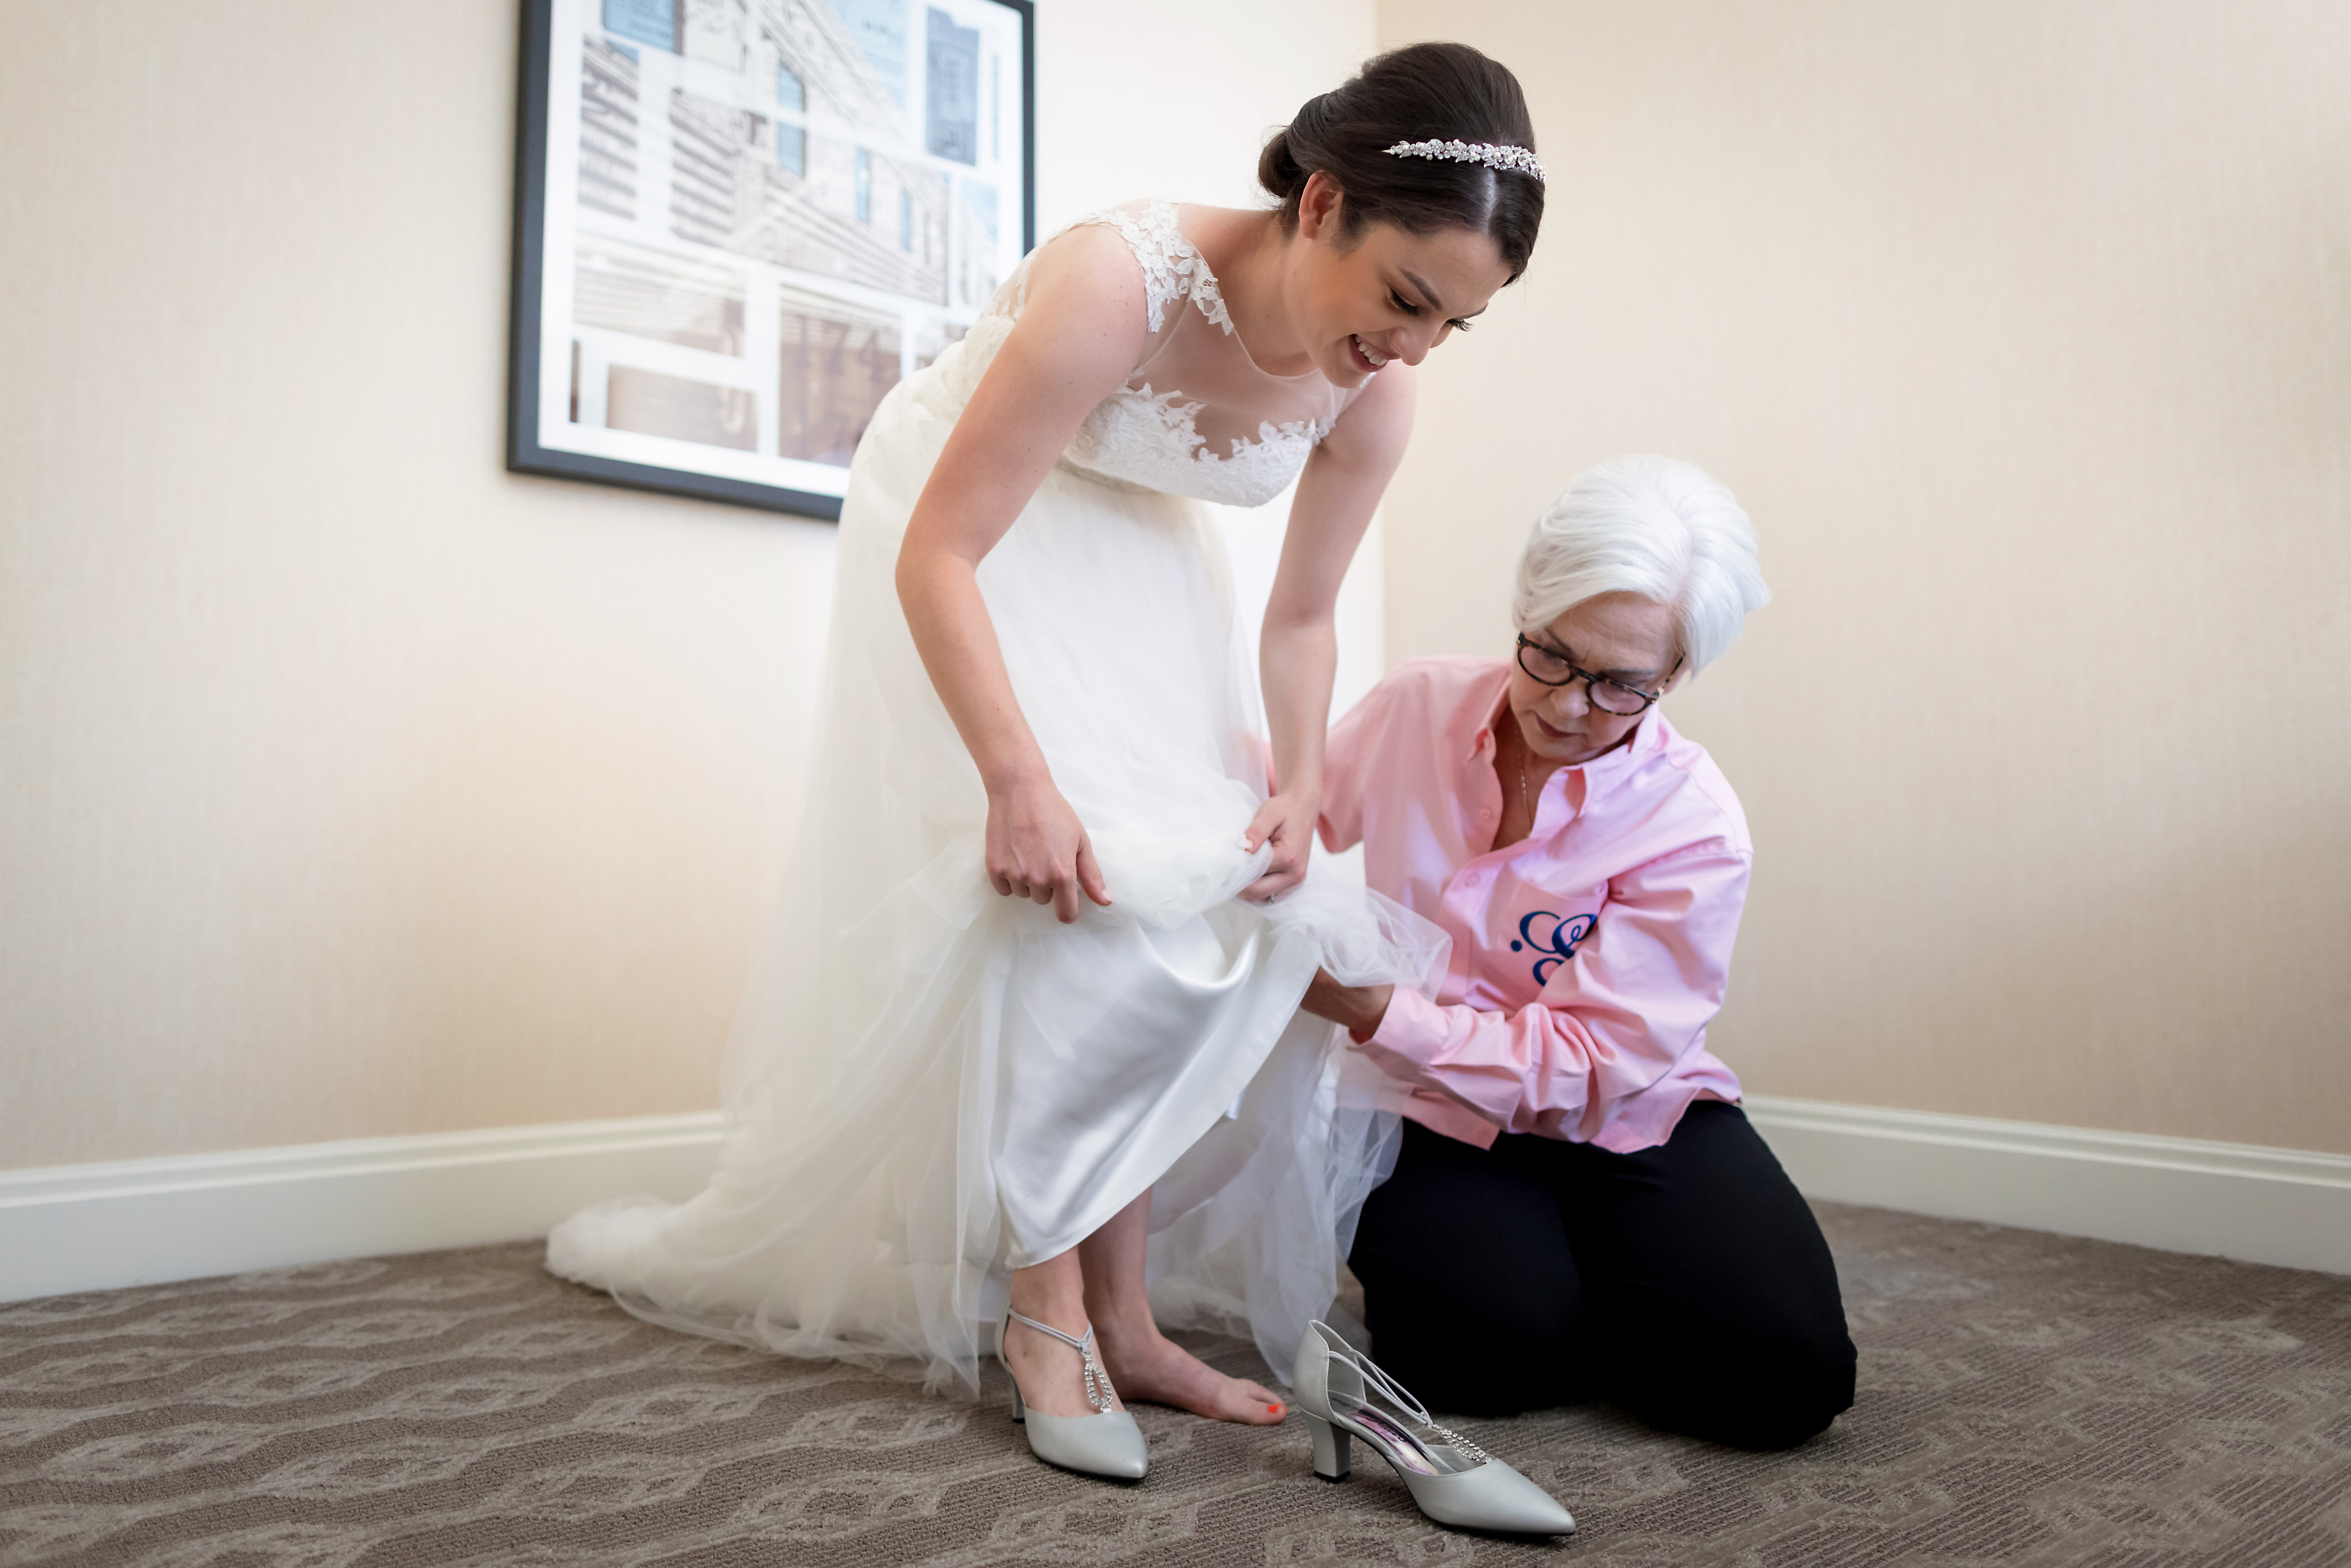 Mom helps bride put on shoes while getting ready for her wedding